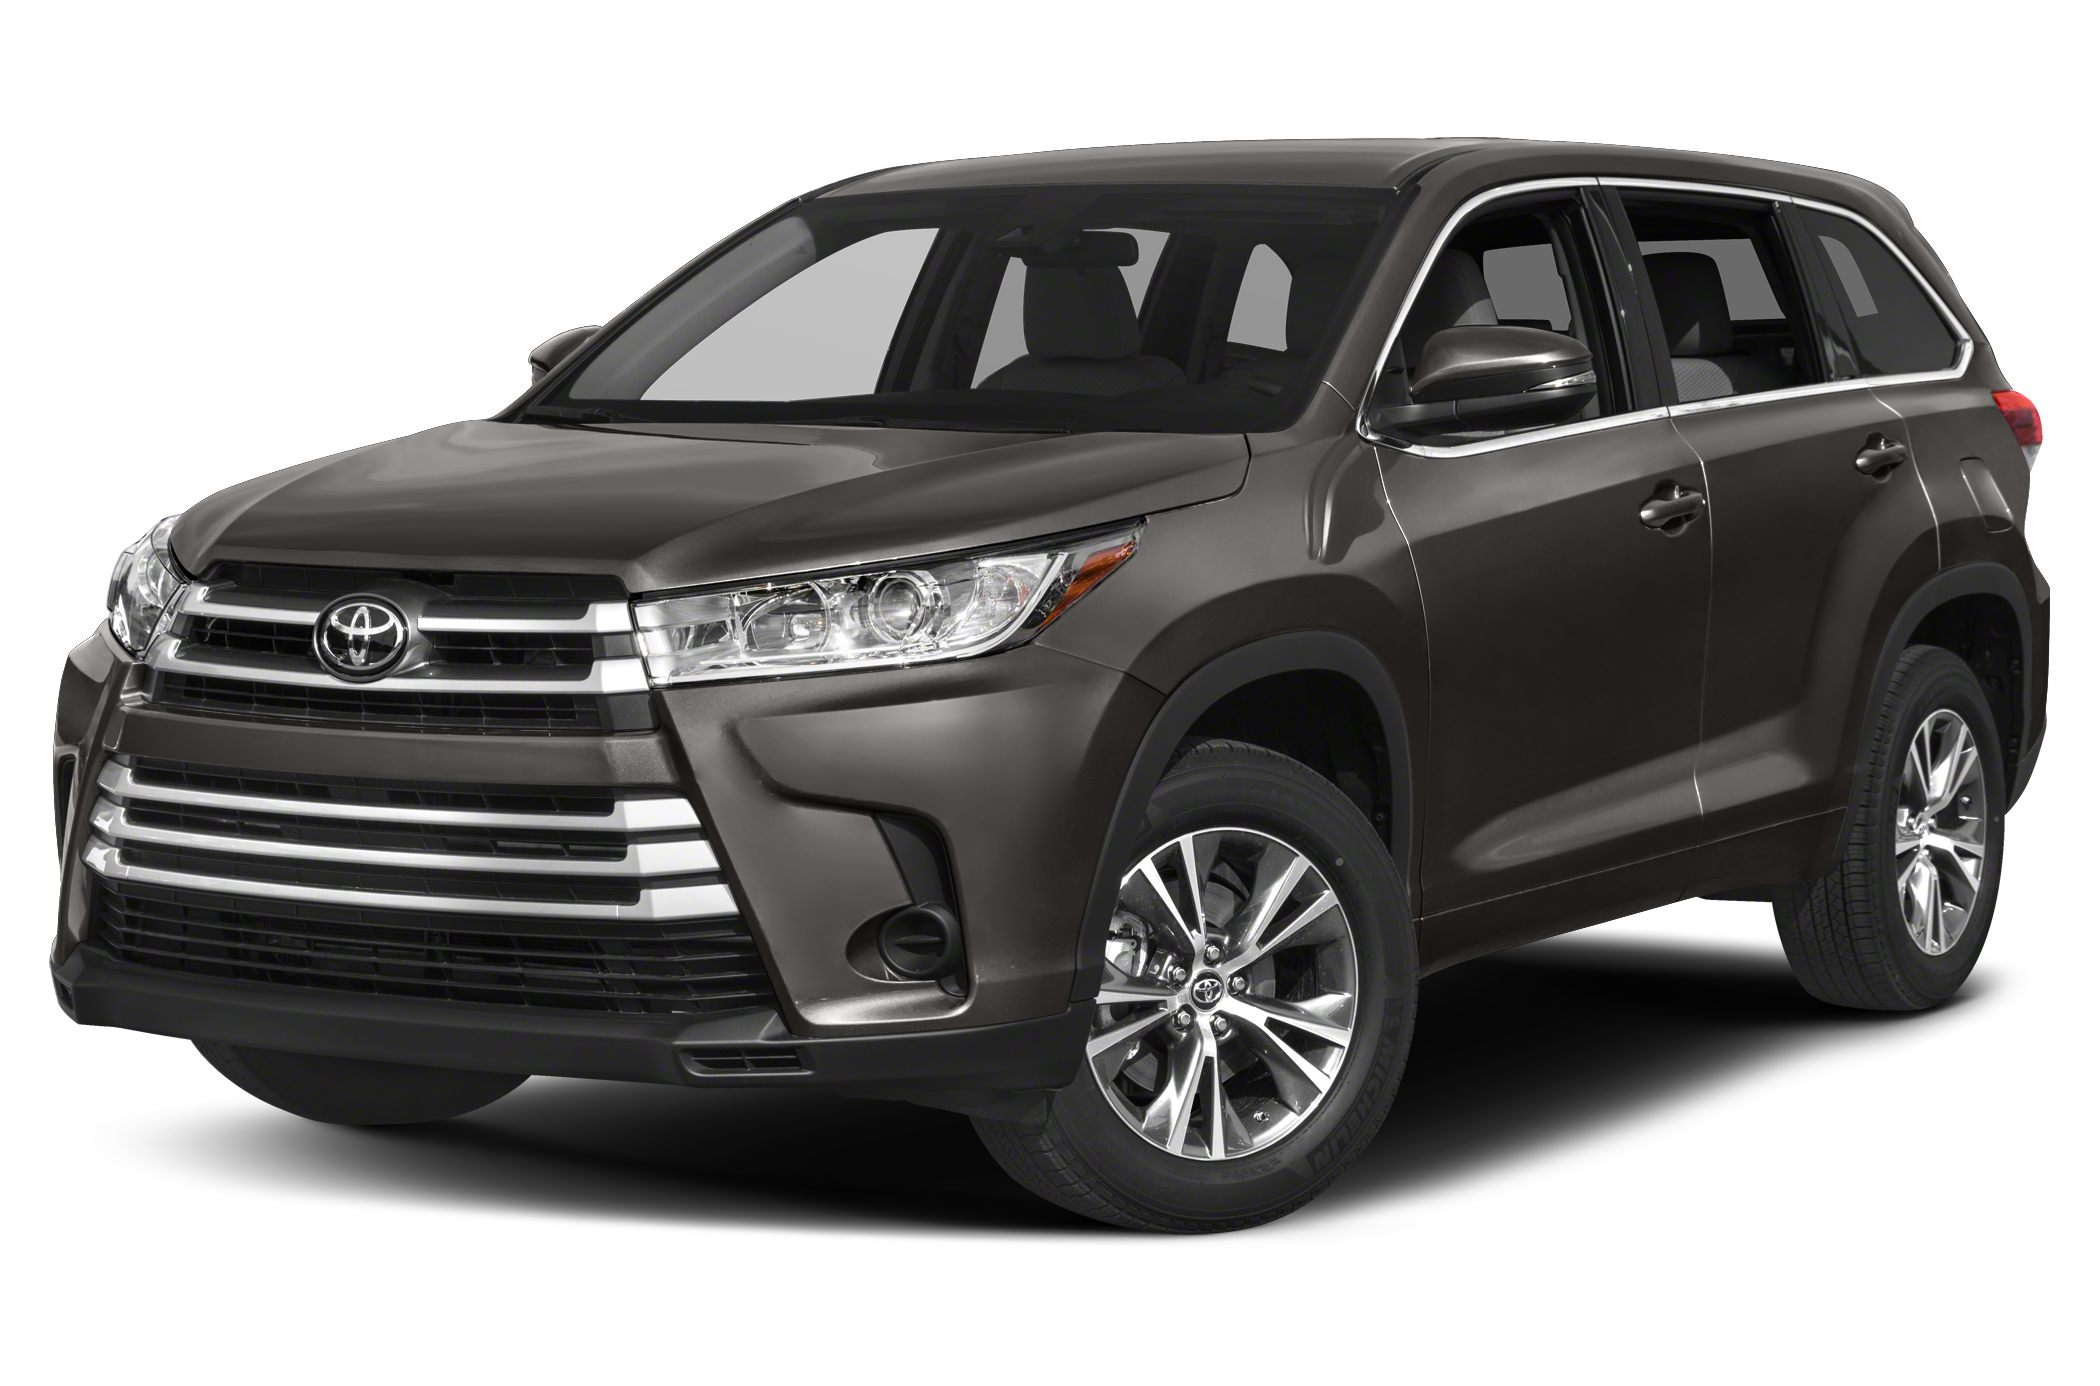 Toyota Highlander Lease Deals >> 2018 Toyota Highlander Pictures & Photos - CarsDirect